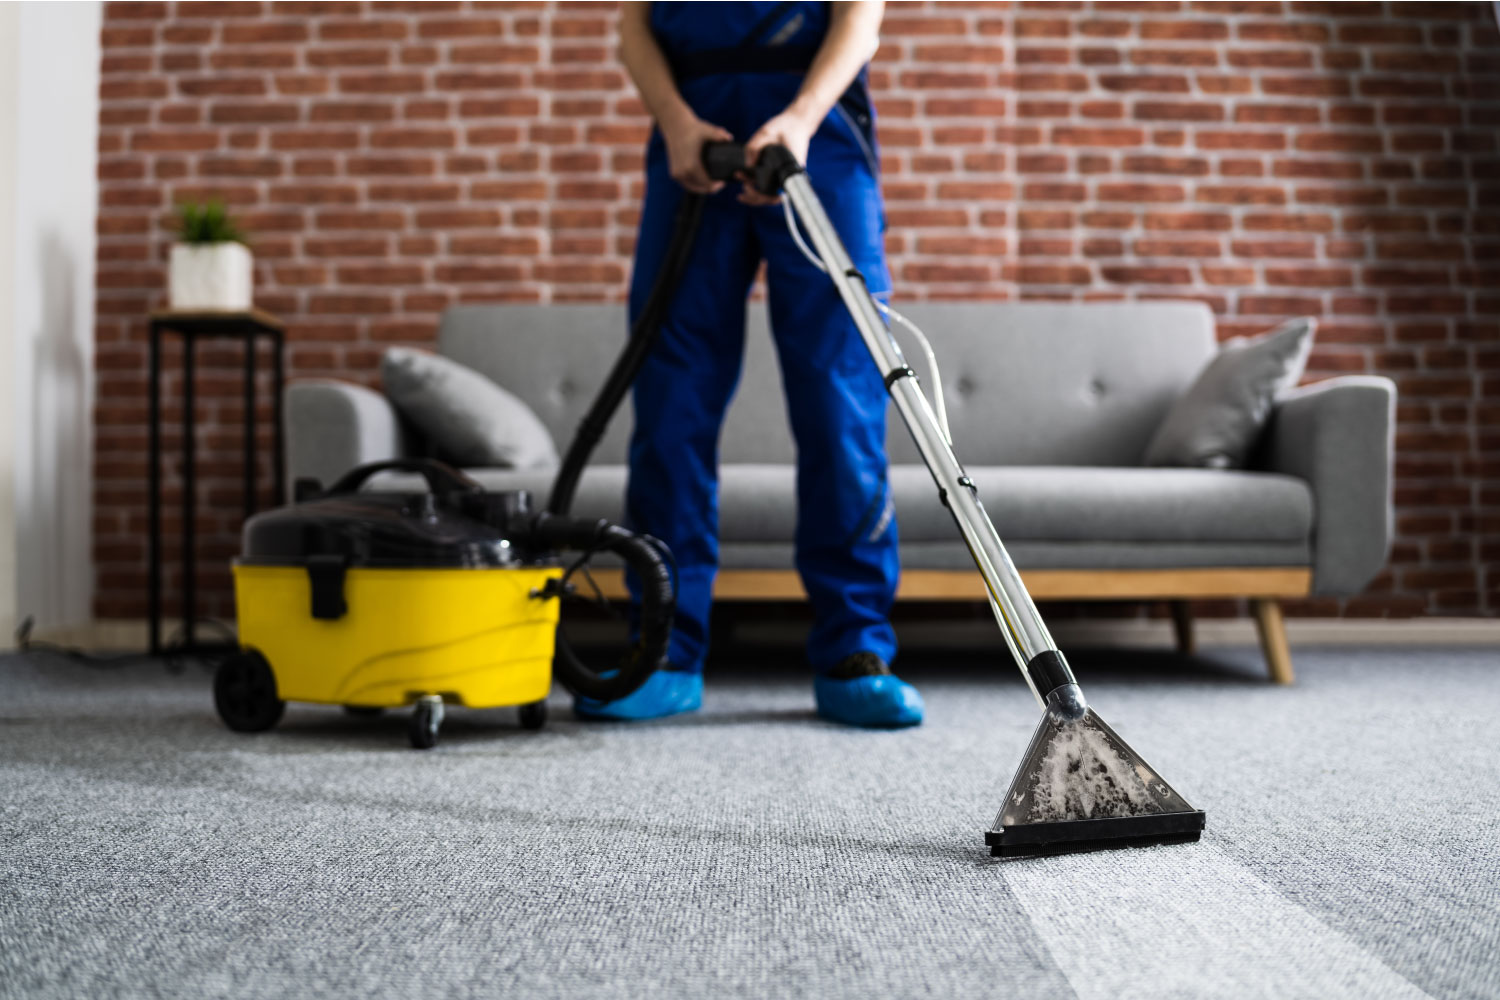 a professional cleaner vacuuming a home carpet